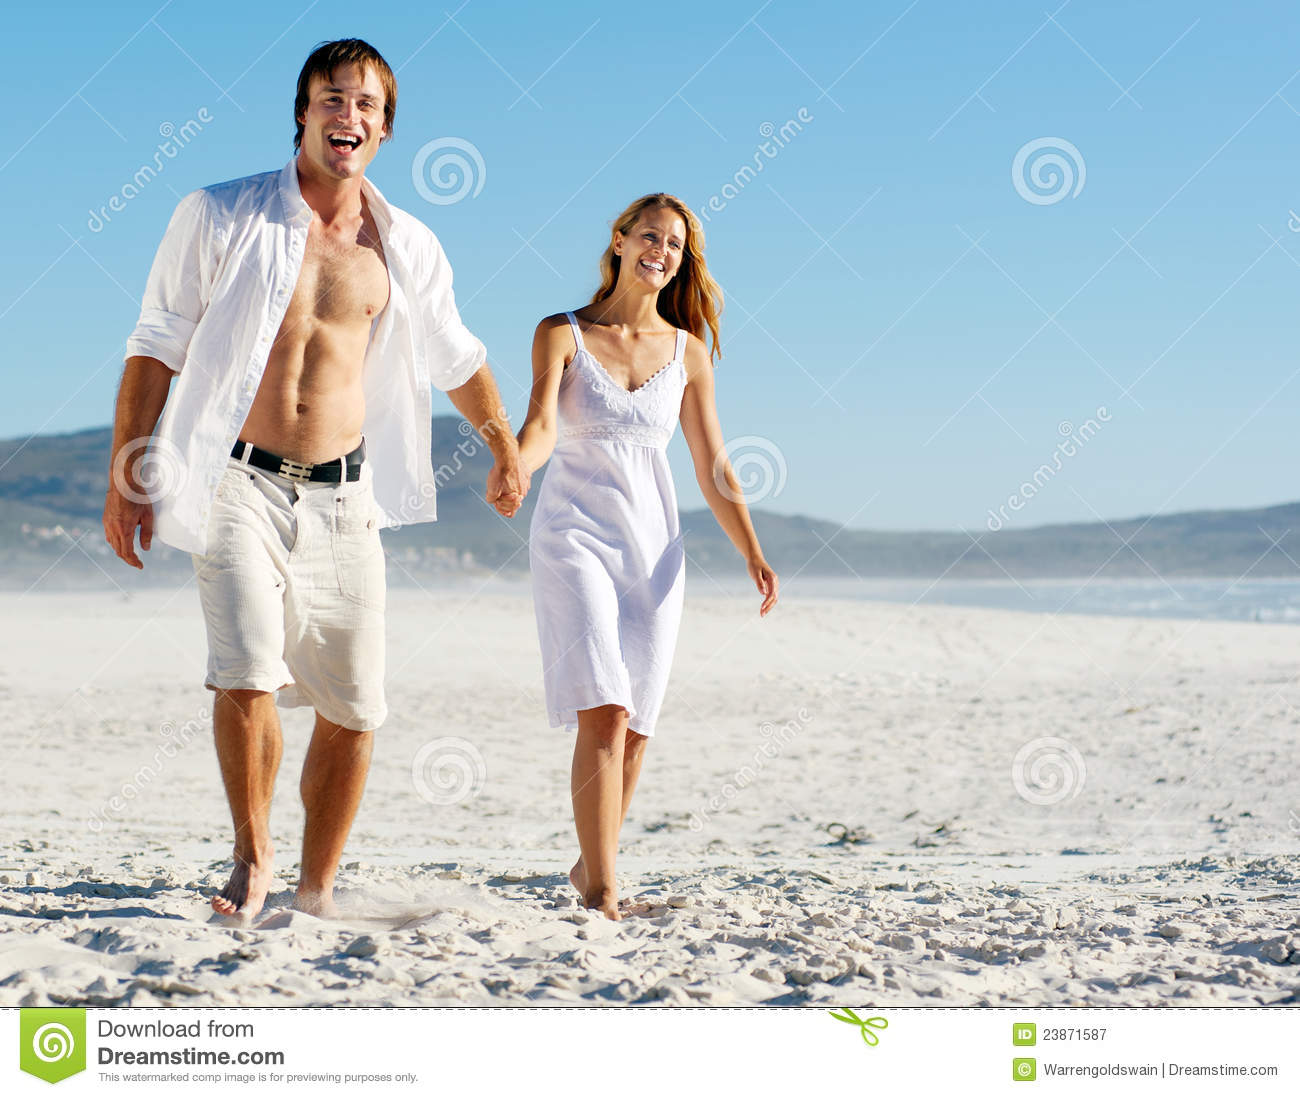 Couple At The Beach Stock Image Image Of Caucasian: Carefree Walking Beach Couple Stock Image